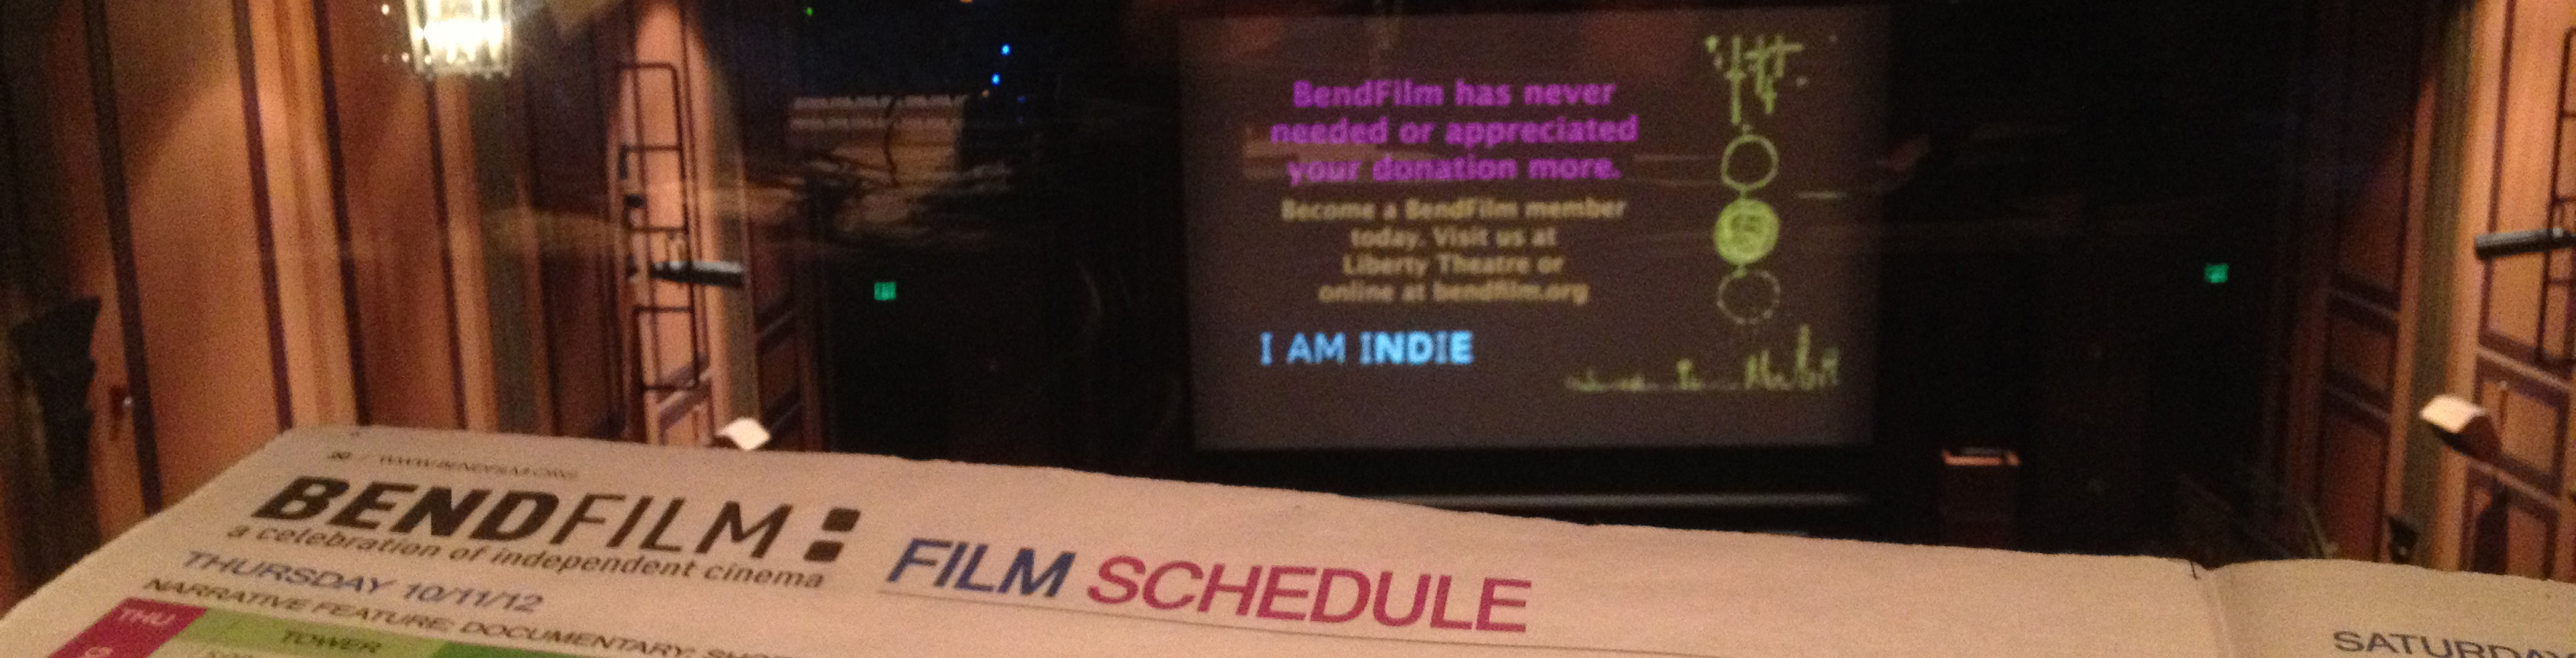 BendFilm at the Tower Theatre